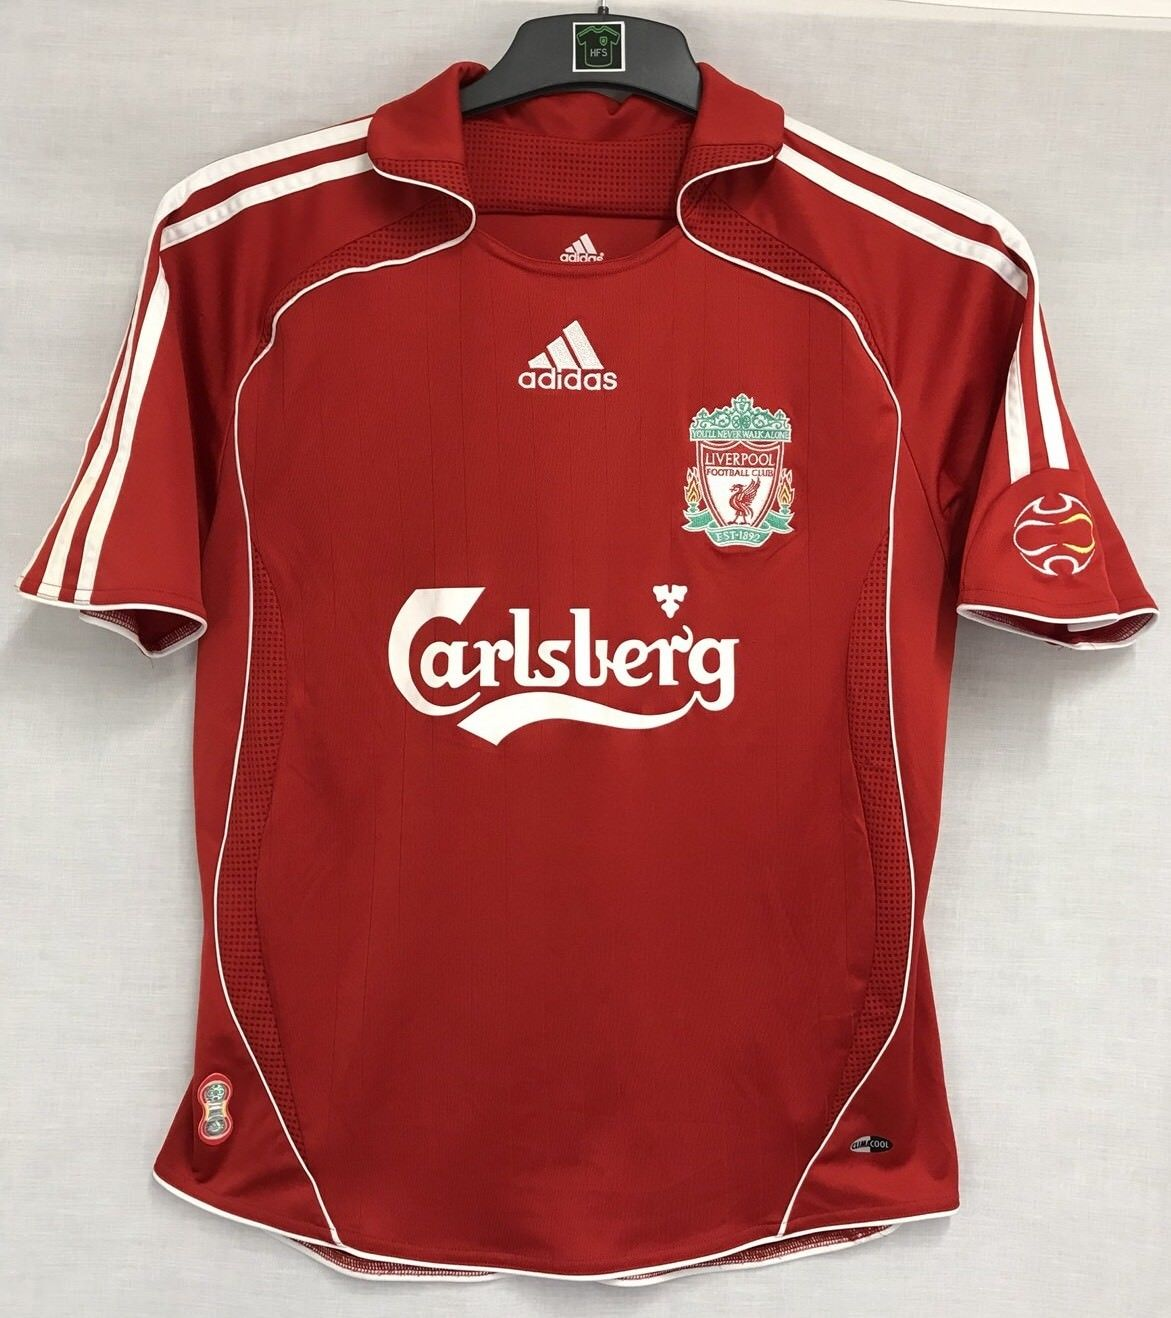 805d73623 Liverpool Steven Gerrard 8 Football Shirt 2006 08 Adults XS Adidas. 🔍.  instock